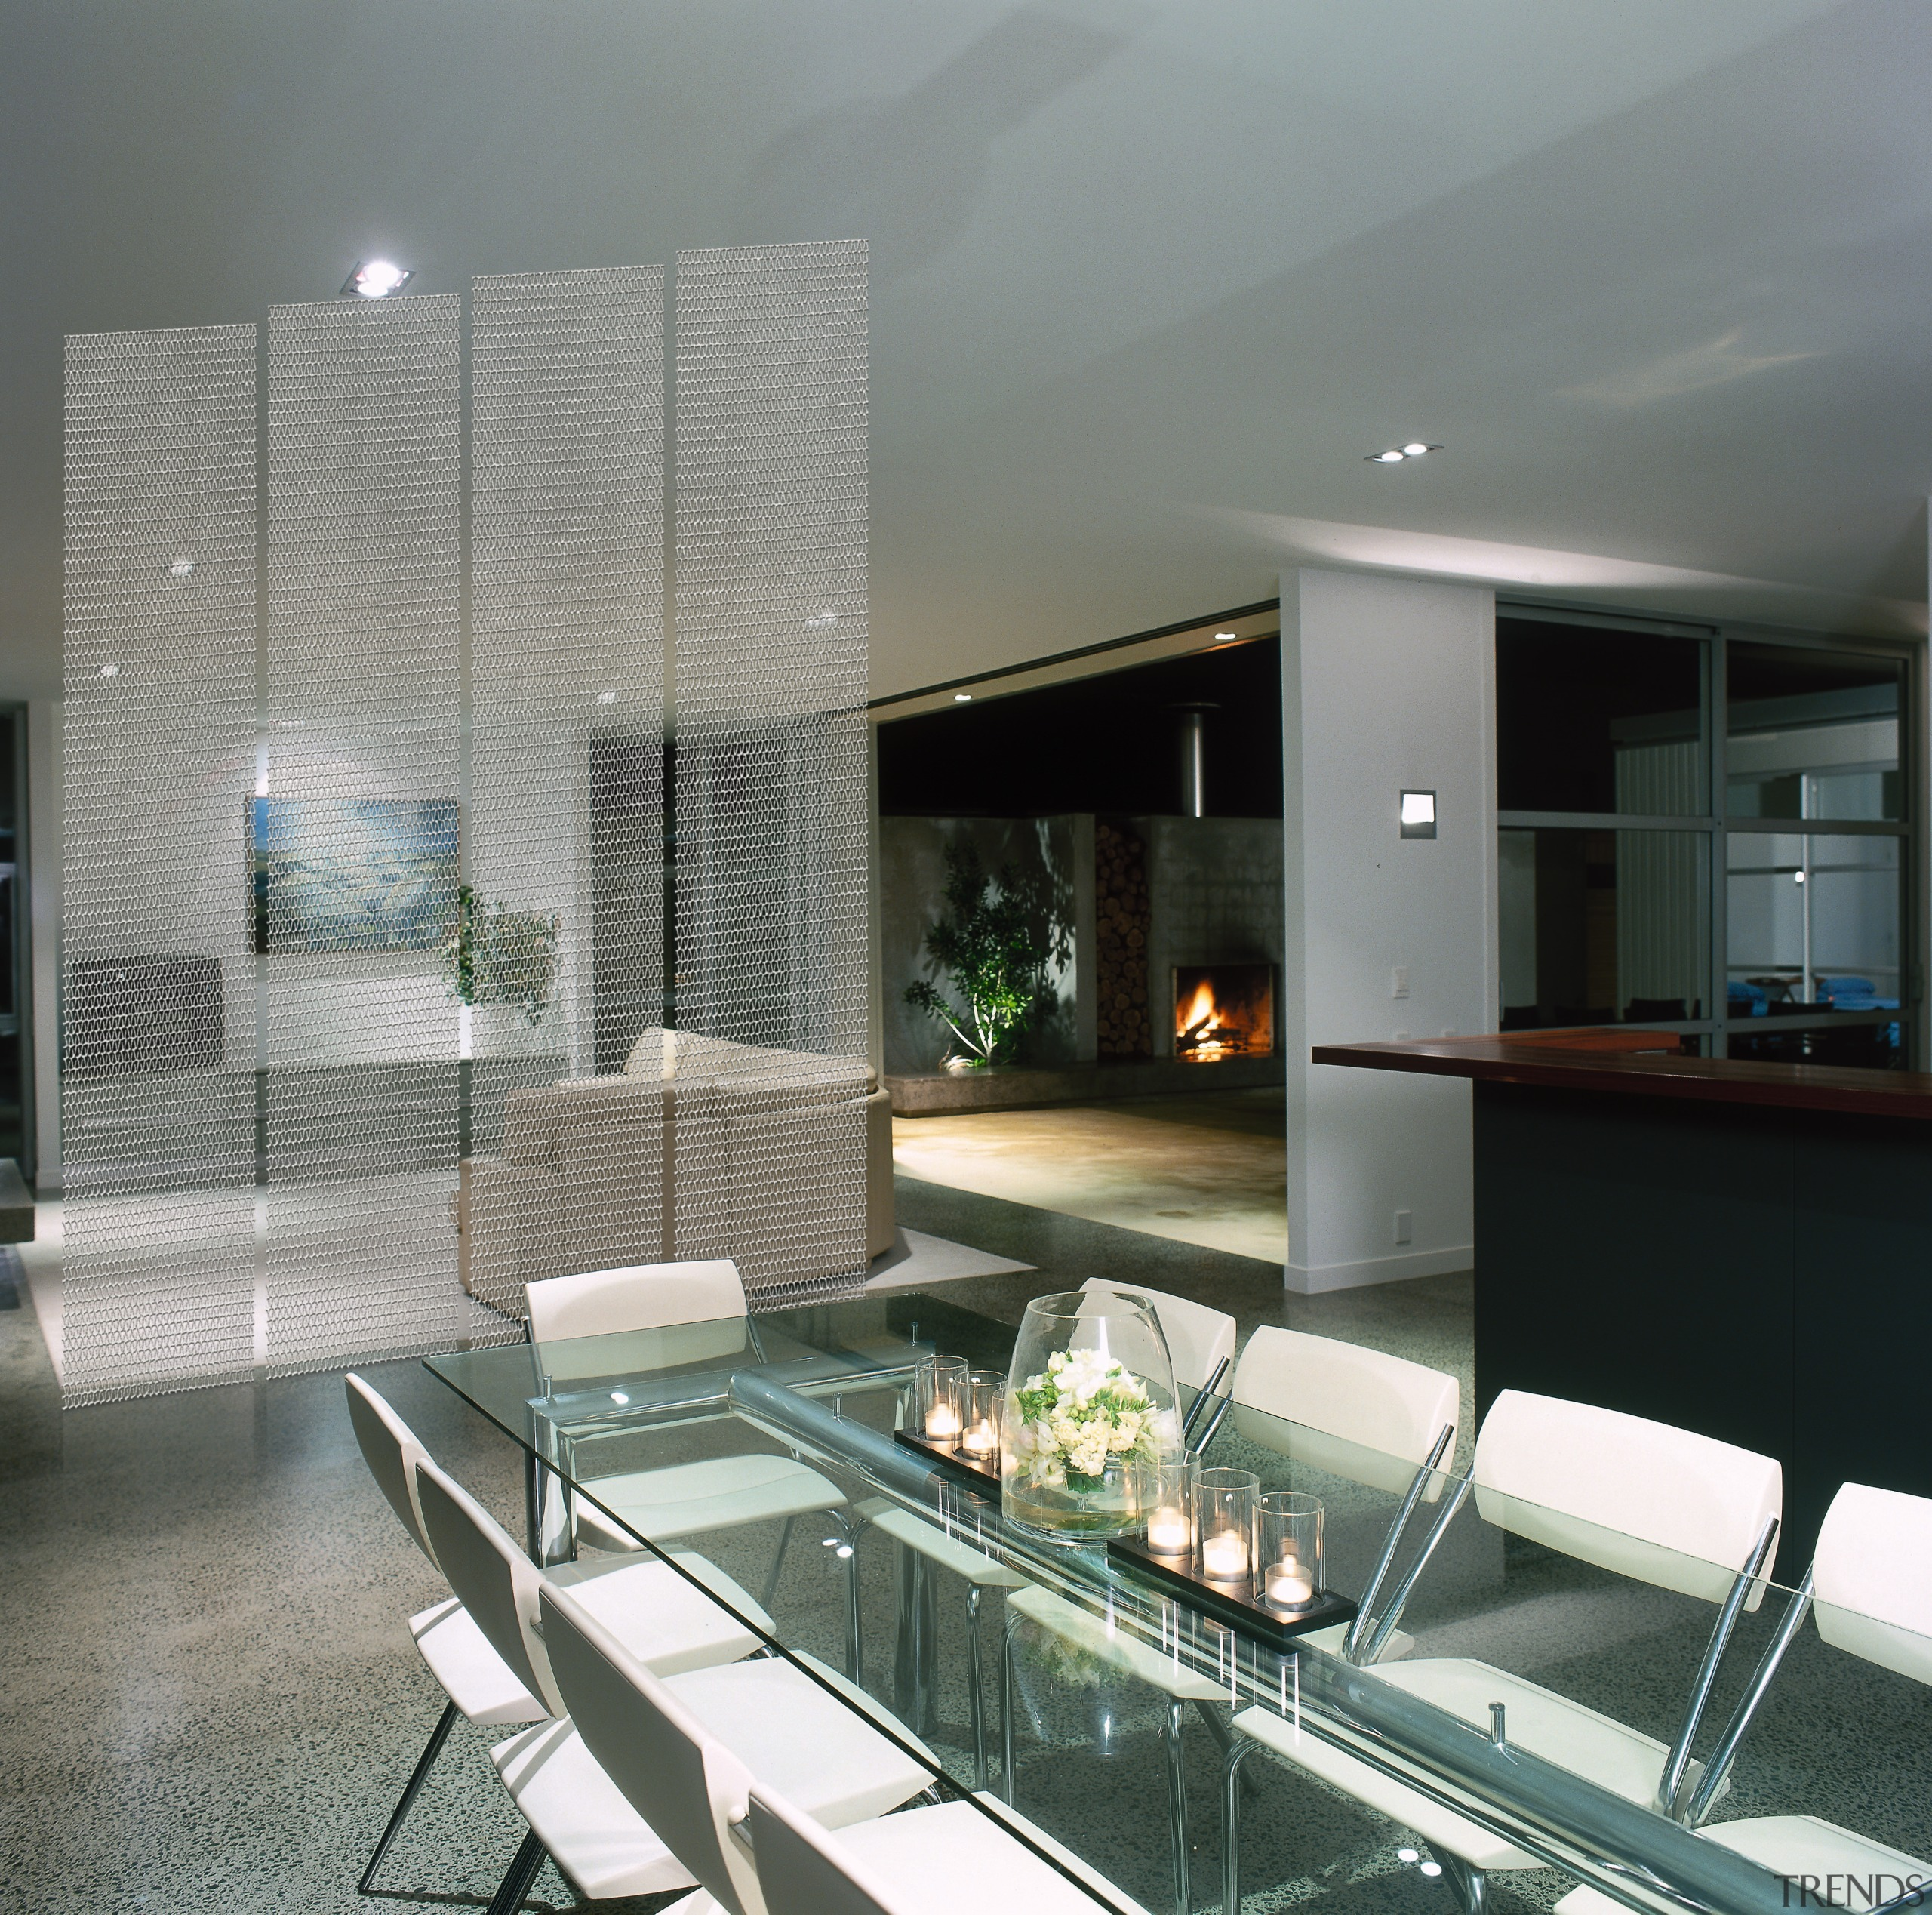 A dining area featuring designer mesh. The area architecture, condominium, glass, interior design, real estate, window, gray